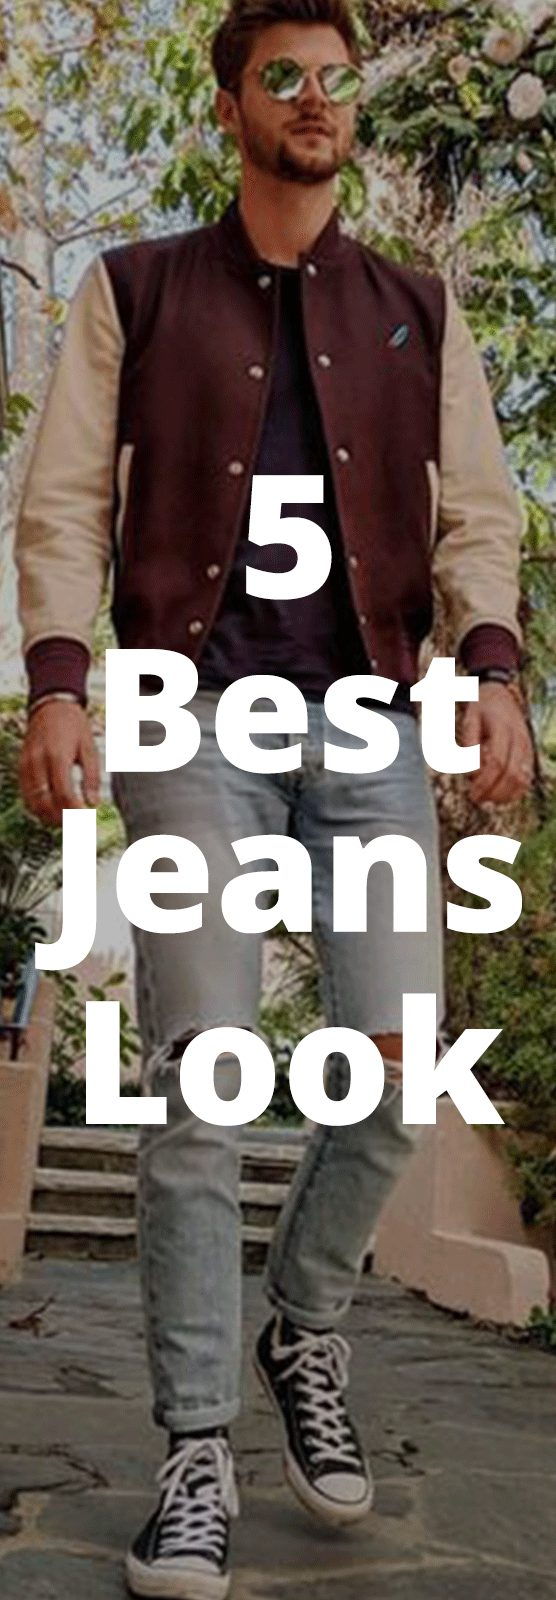 5 Best Jeans Look